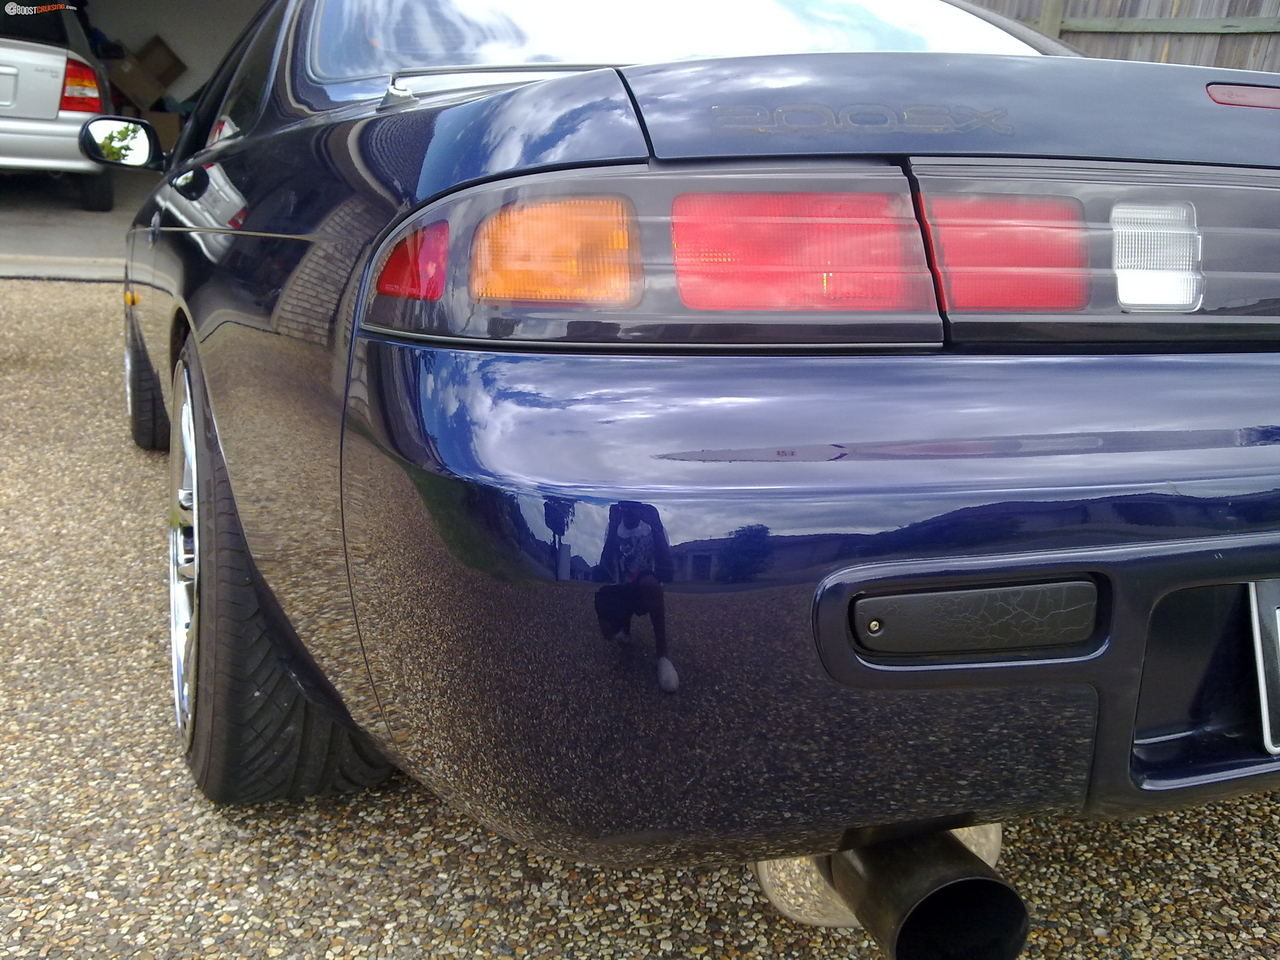 S14 wheel fitment boostcruising only photo i could find on my comp cos im at work not the best but sort of indicative publicscrutiny Images